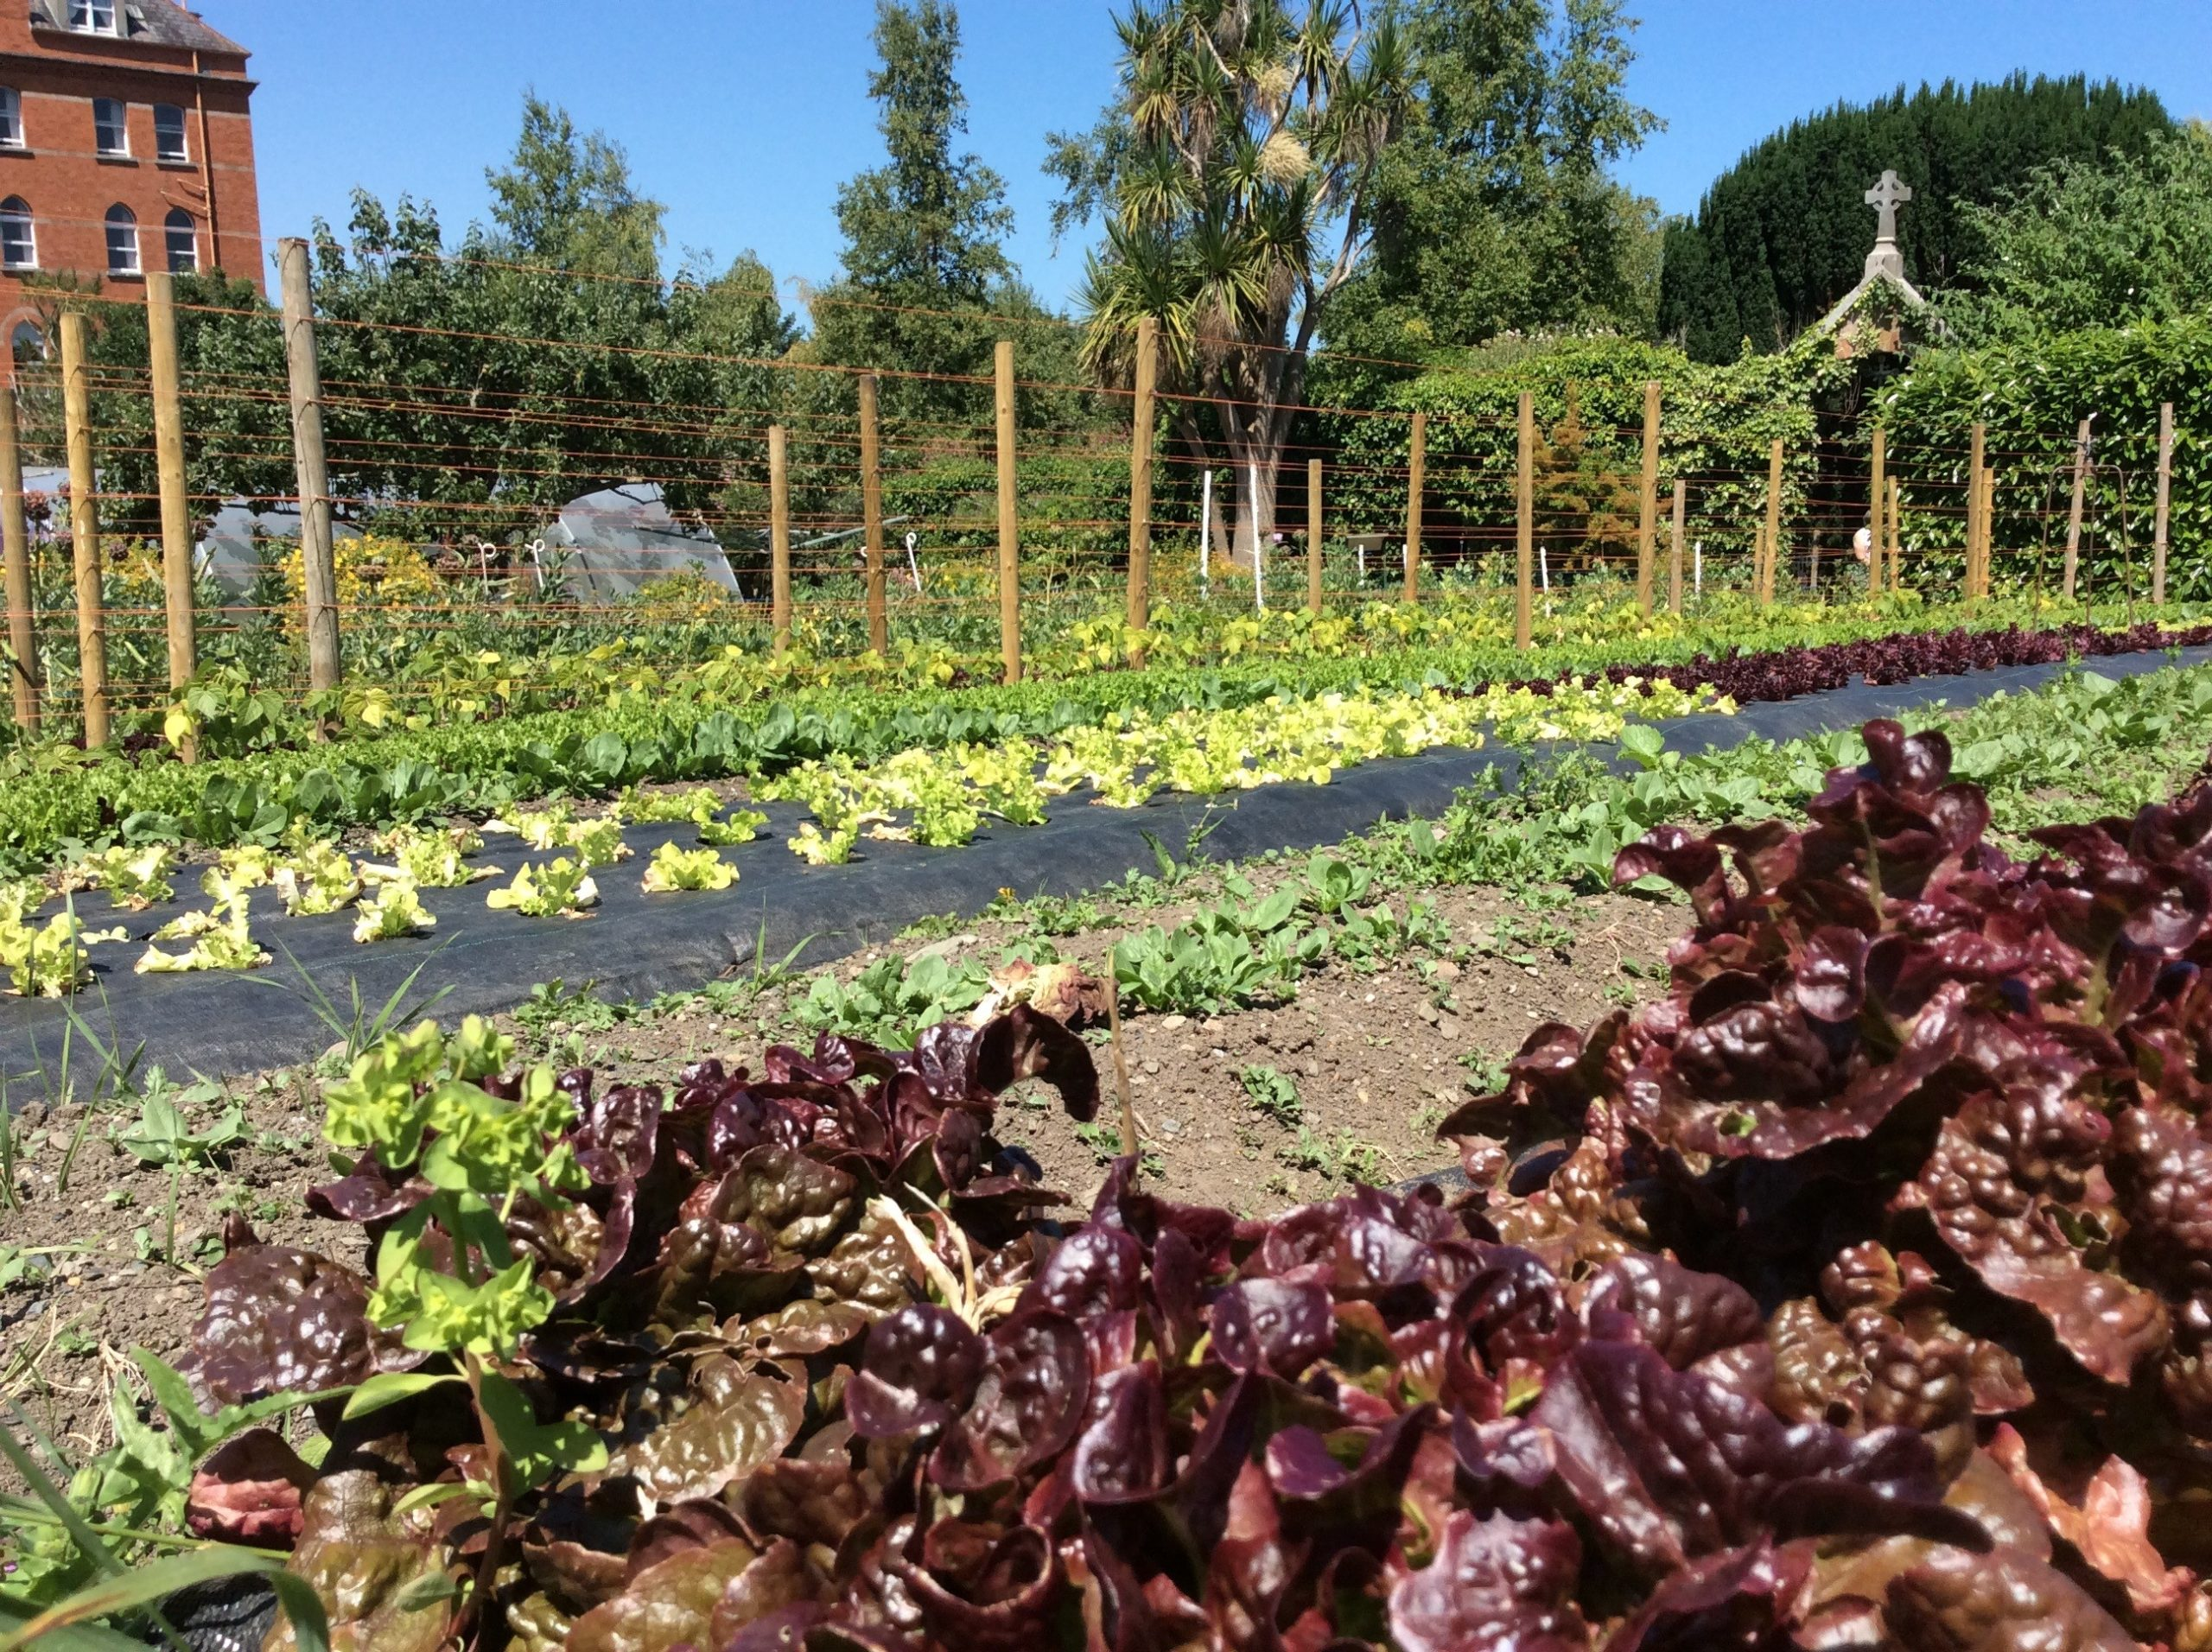 Beautiful vegetables being grown at An Tairseach Organic Farm and Ecology Centre in Wicklow - Wicklow Naturally